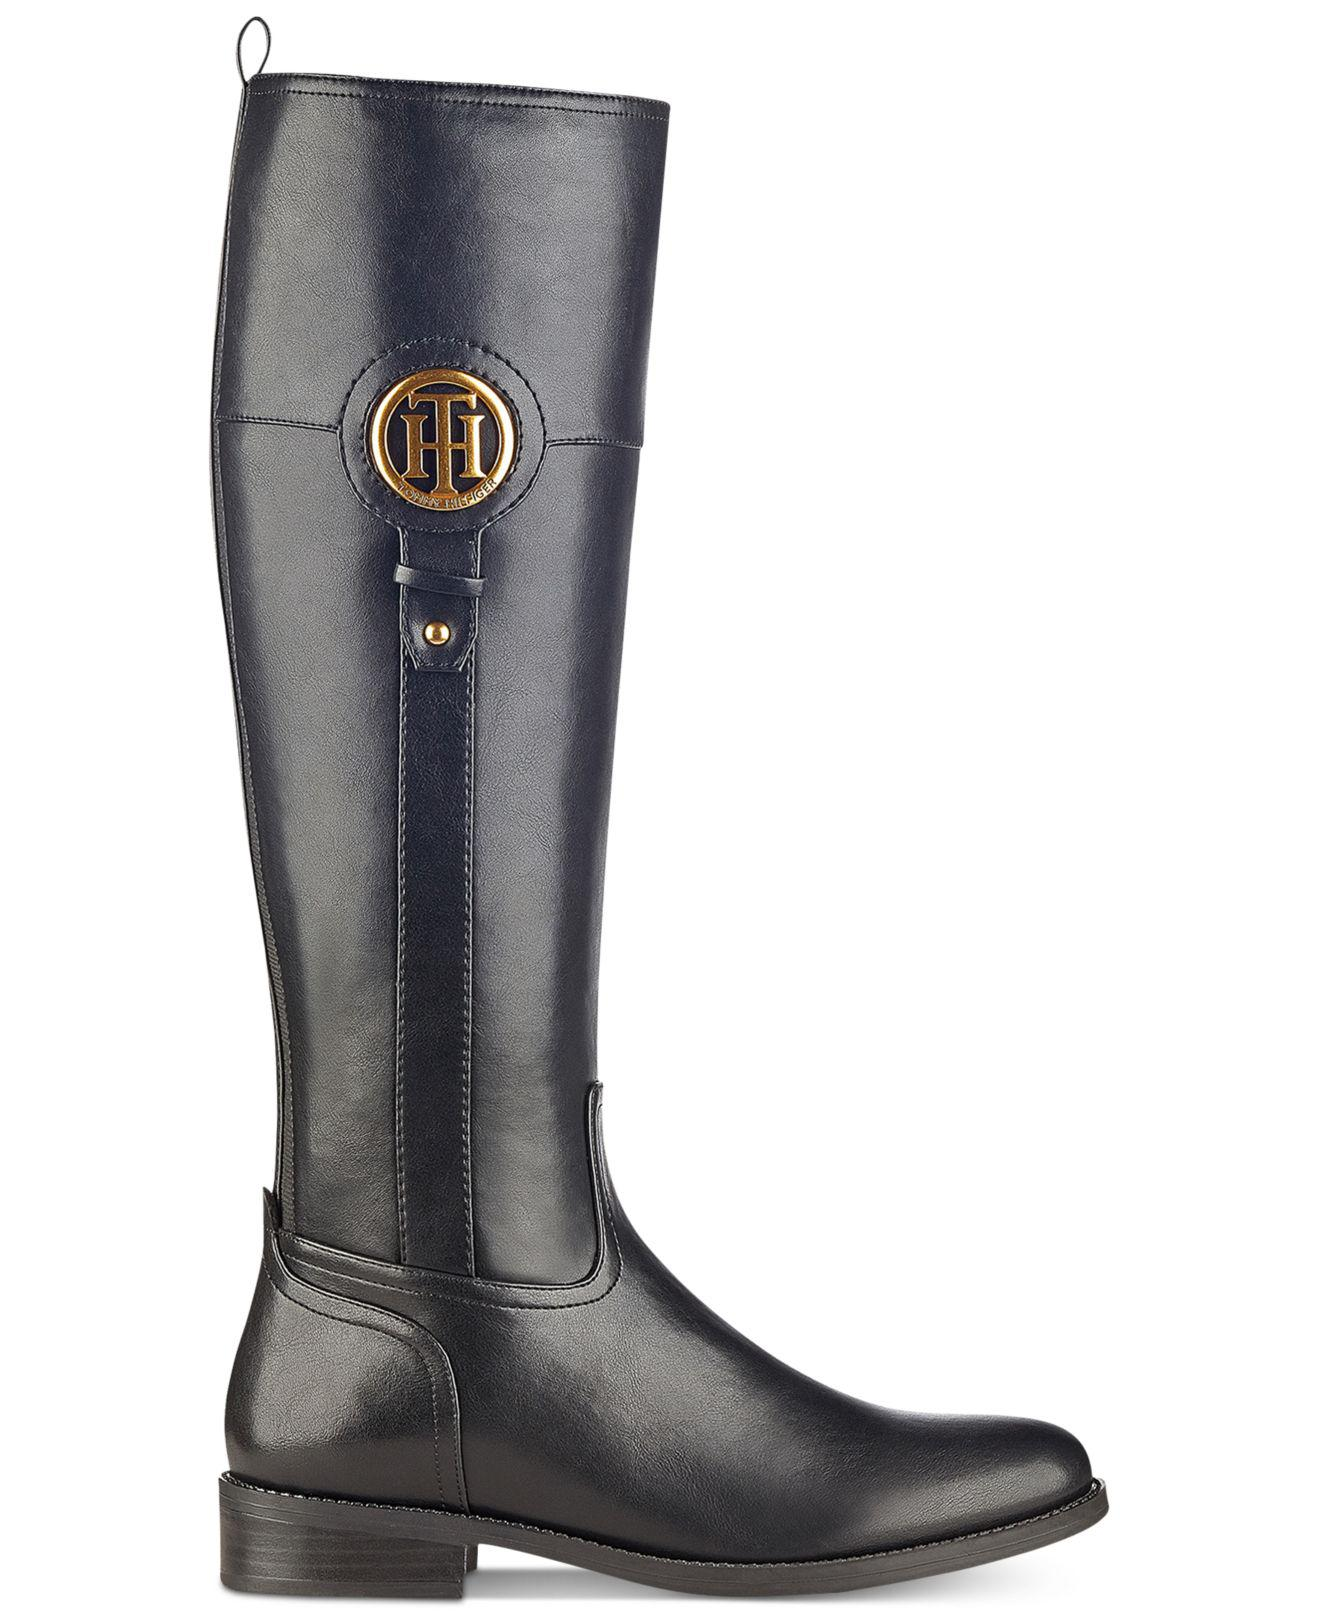 1e380f22 Lyst - Tommy Hilfiger Ilia2 Riding Boots in Black - Save 77.06422018348624%